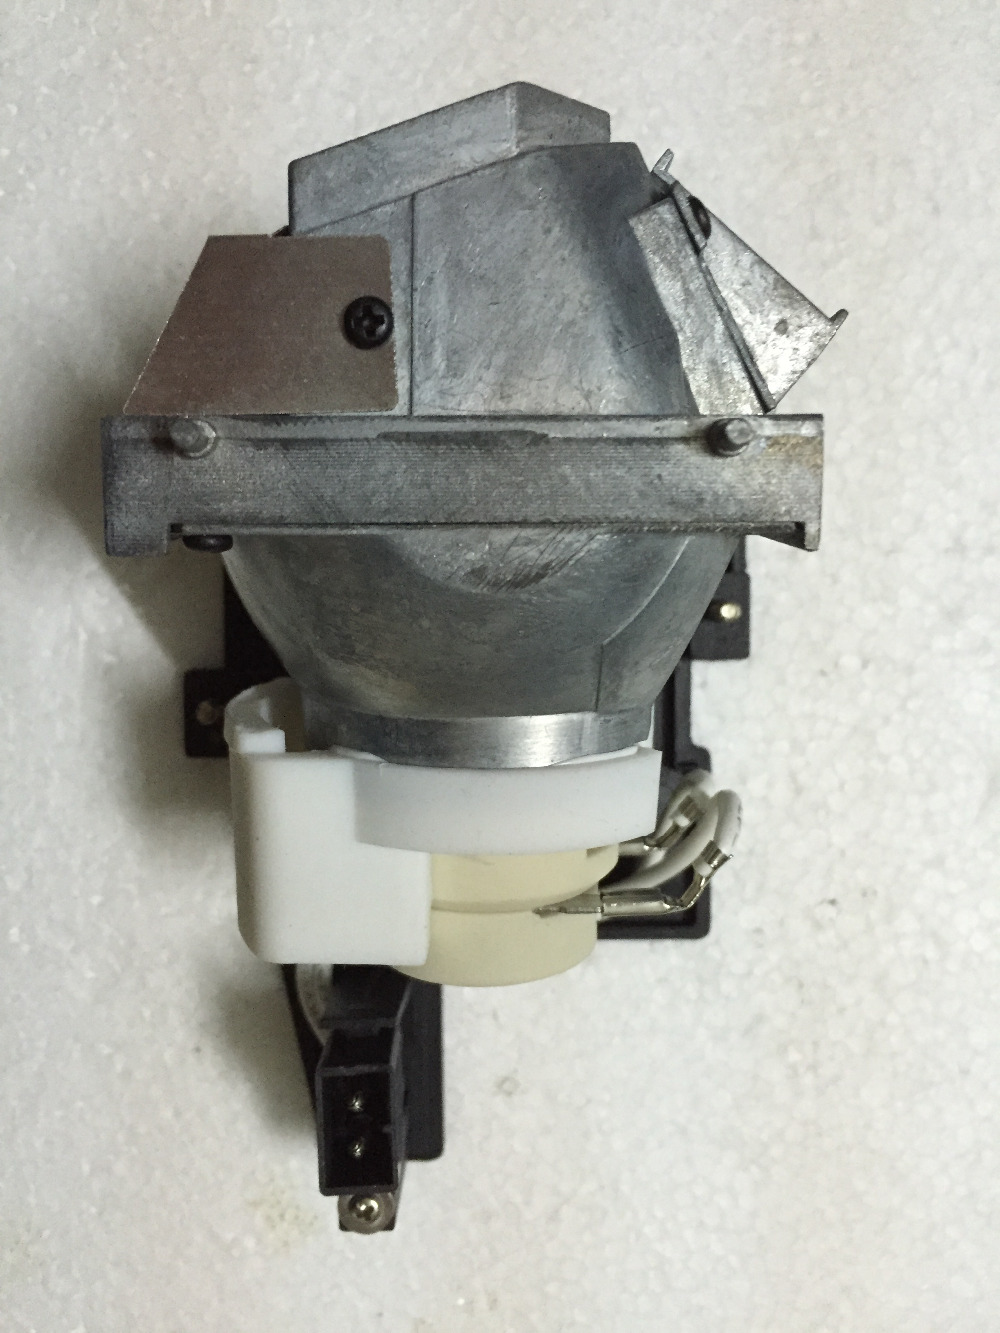 100% New Original bare lamp with housing SP.8TU01GC01 / BL-FP240C For OPTOMA  W306ST / X306ST Projectors osram original oem bare lamp with housing sp lamp 078 for infocus in3124 in3126 in3128hd projectors